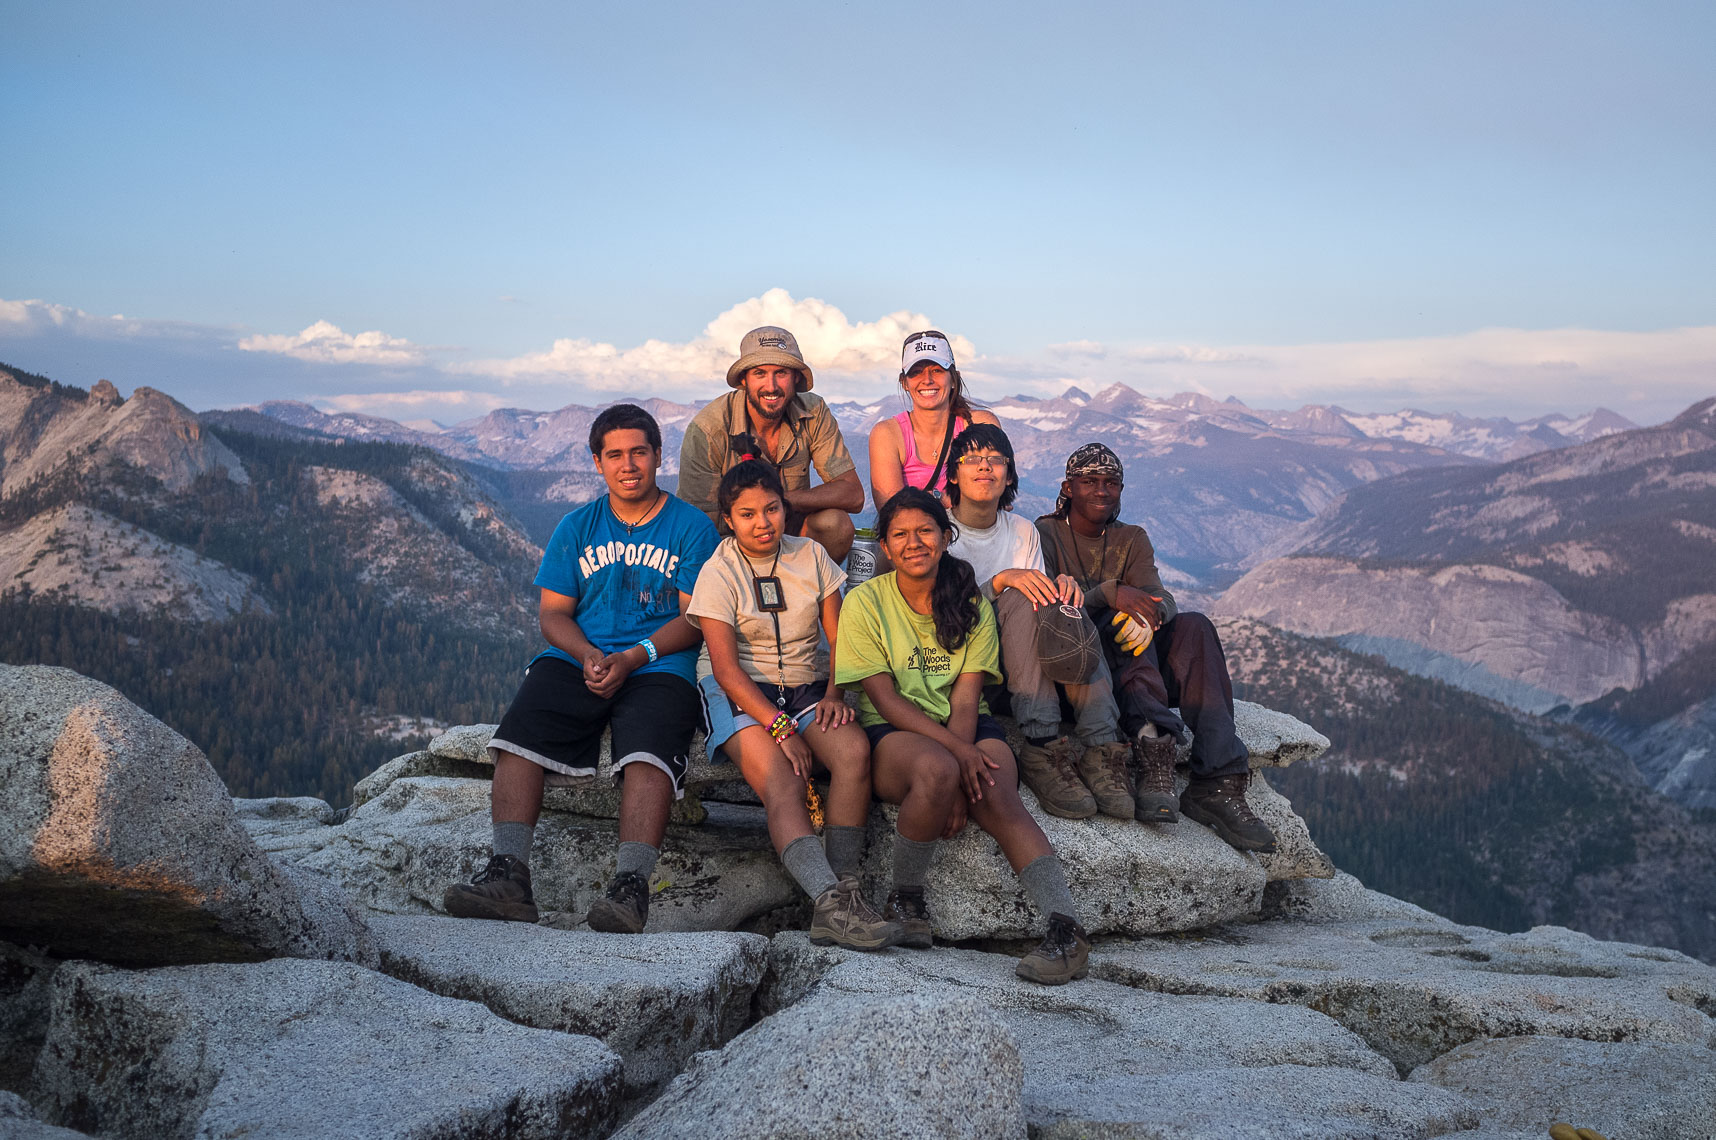 patrick_cavan_brown_woods_project_yosemite_camping_hiking_backpacking-4964